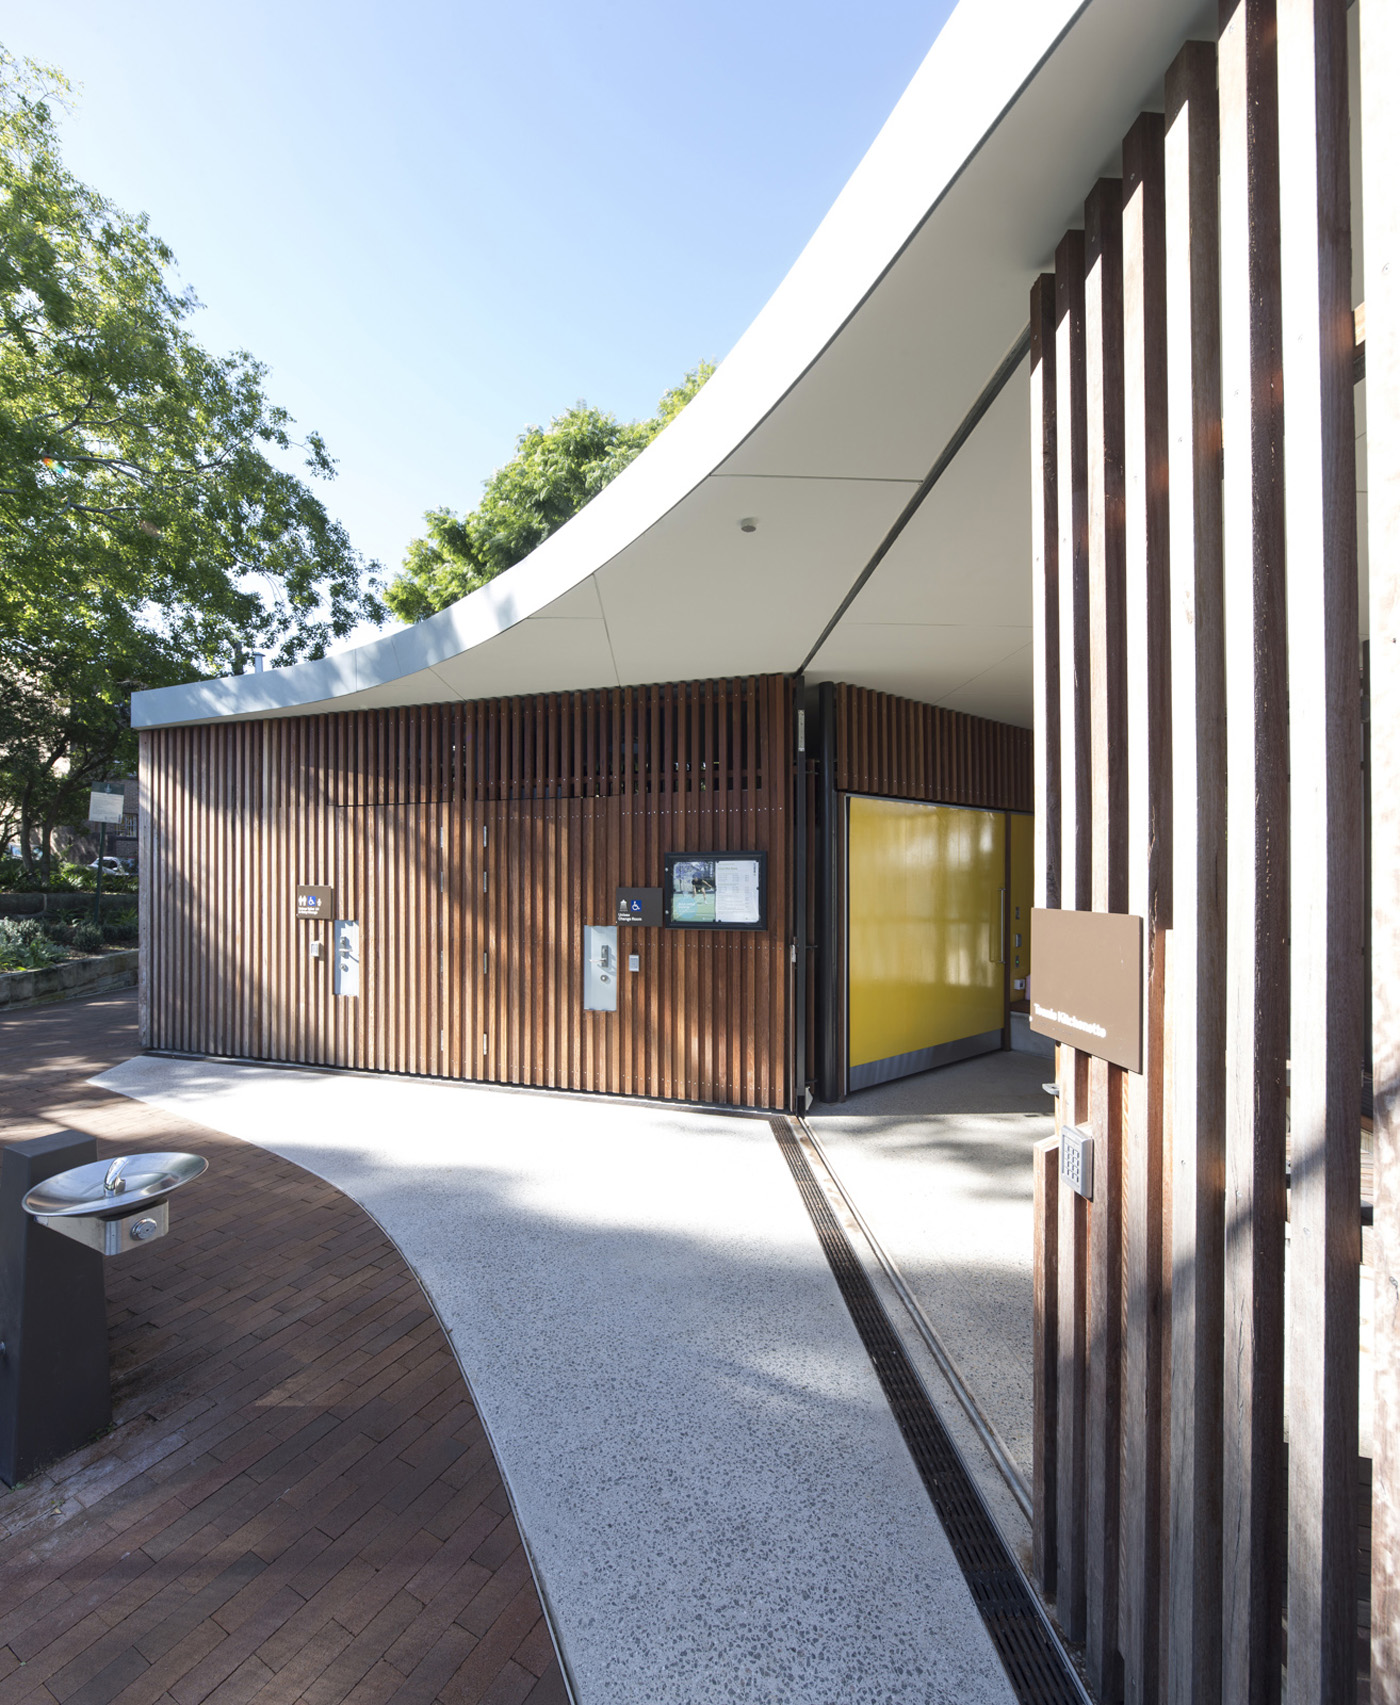 St James Park Amenities by Sam Crawford Architects, tennis court amenities in Glebe.